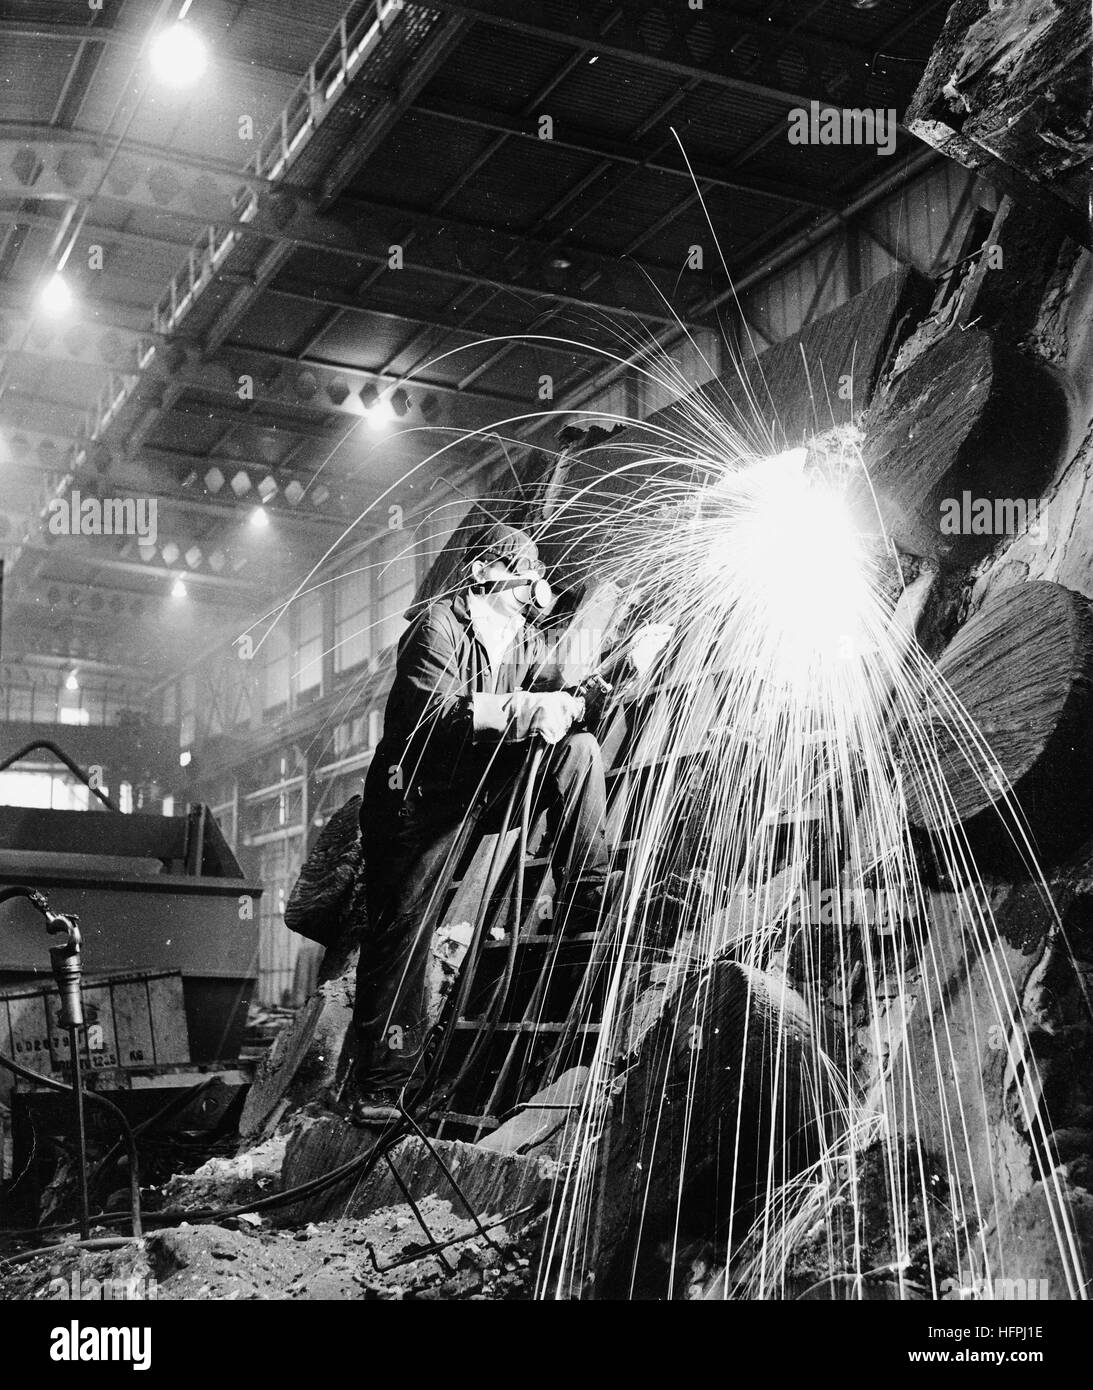 Flame cutting steel at F. H. Lloyd & Company Limited in Darlaston the West Midlands Uk 1964 - Stock Image